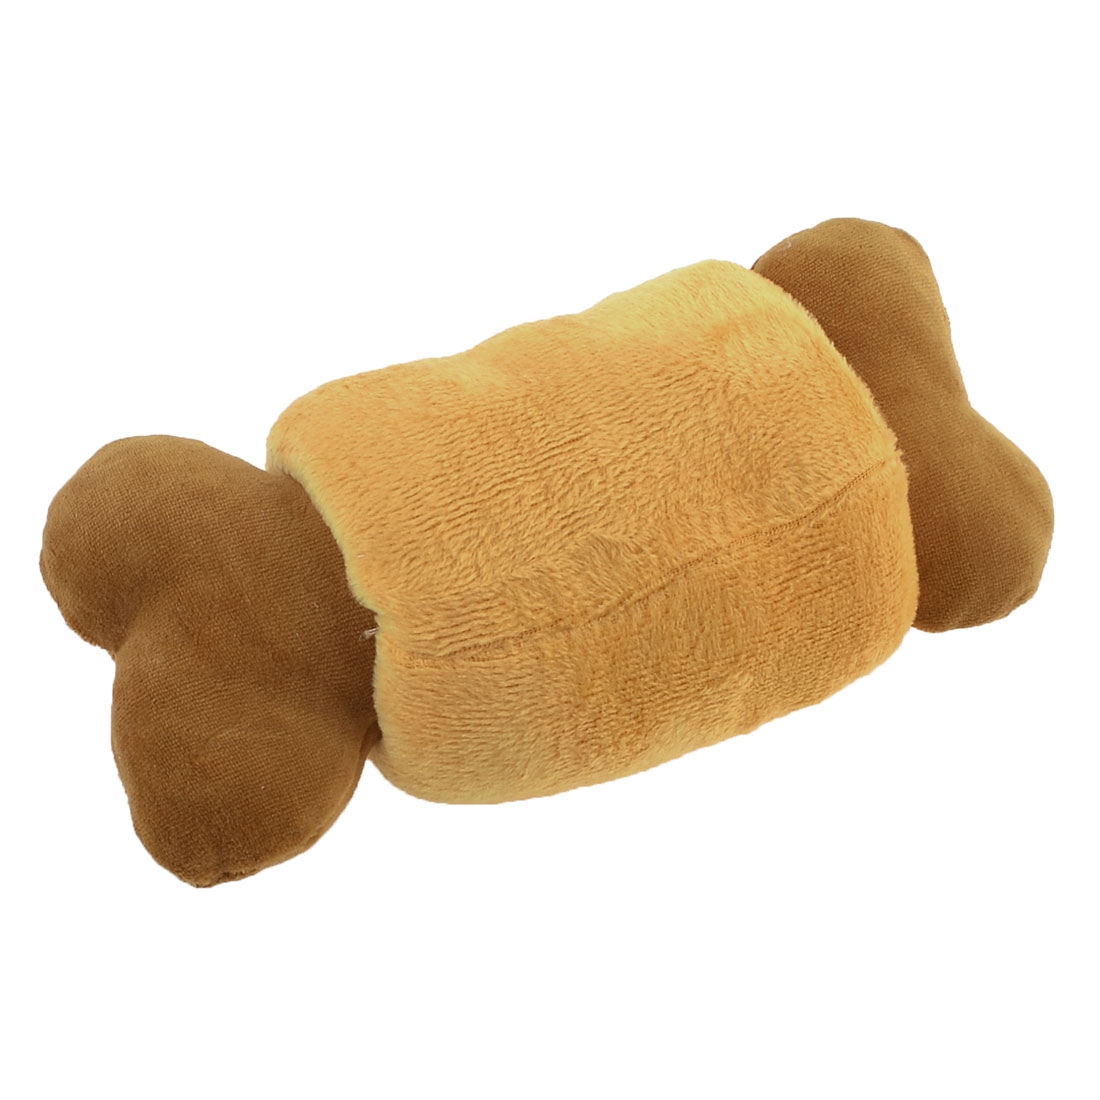 Brown Bone Shaped Pet Dog Puppy Play Chew Squeaking Toy